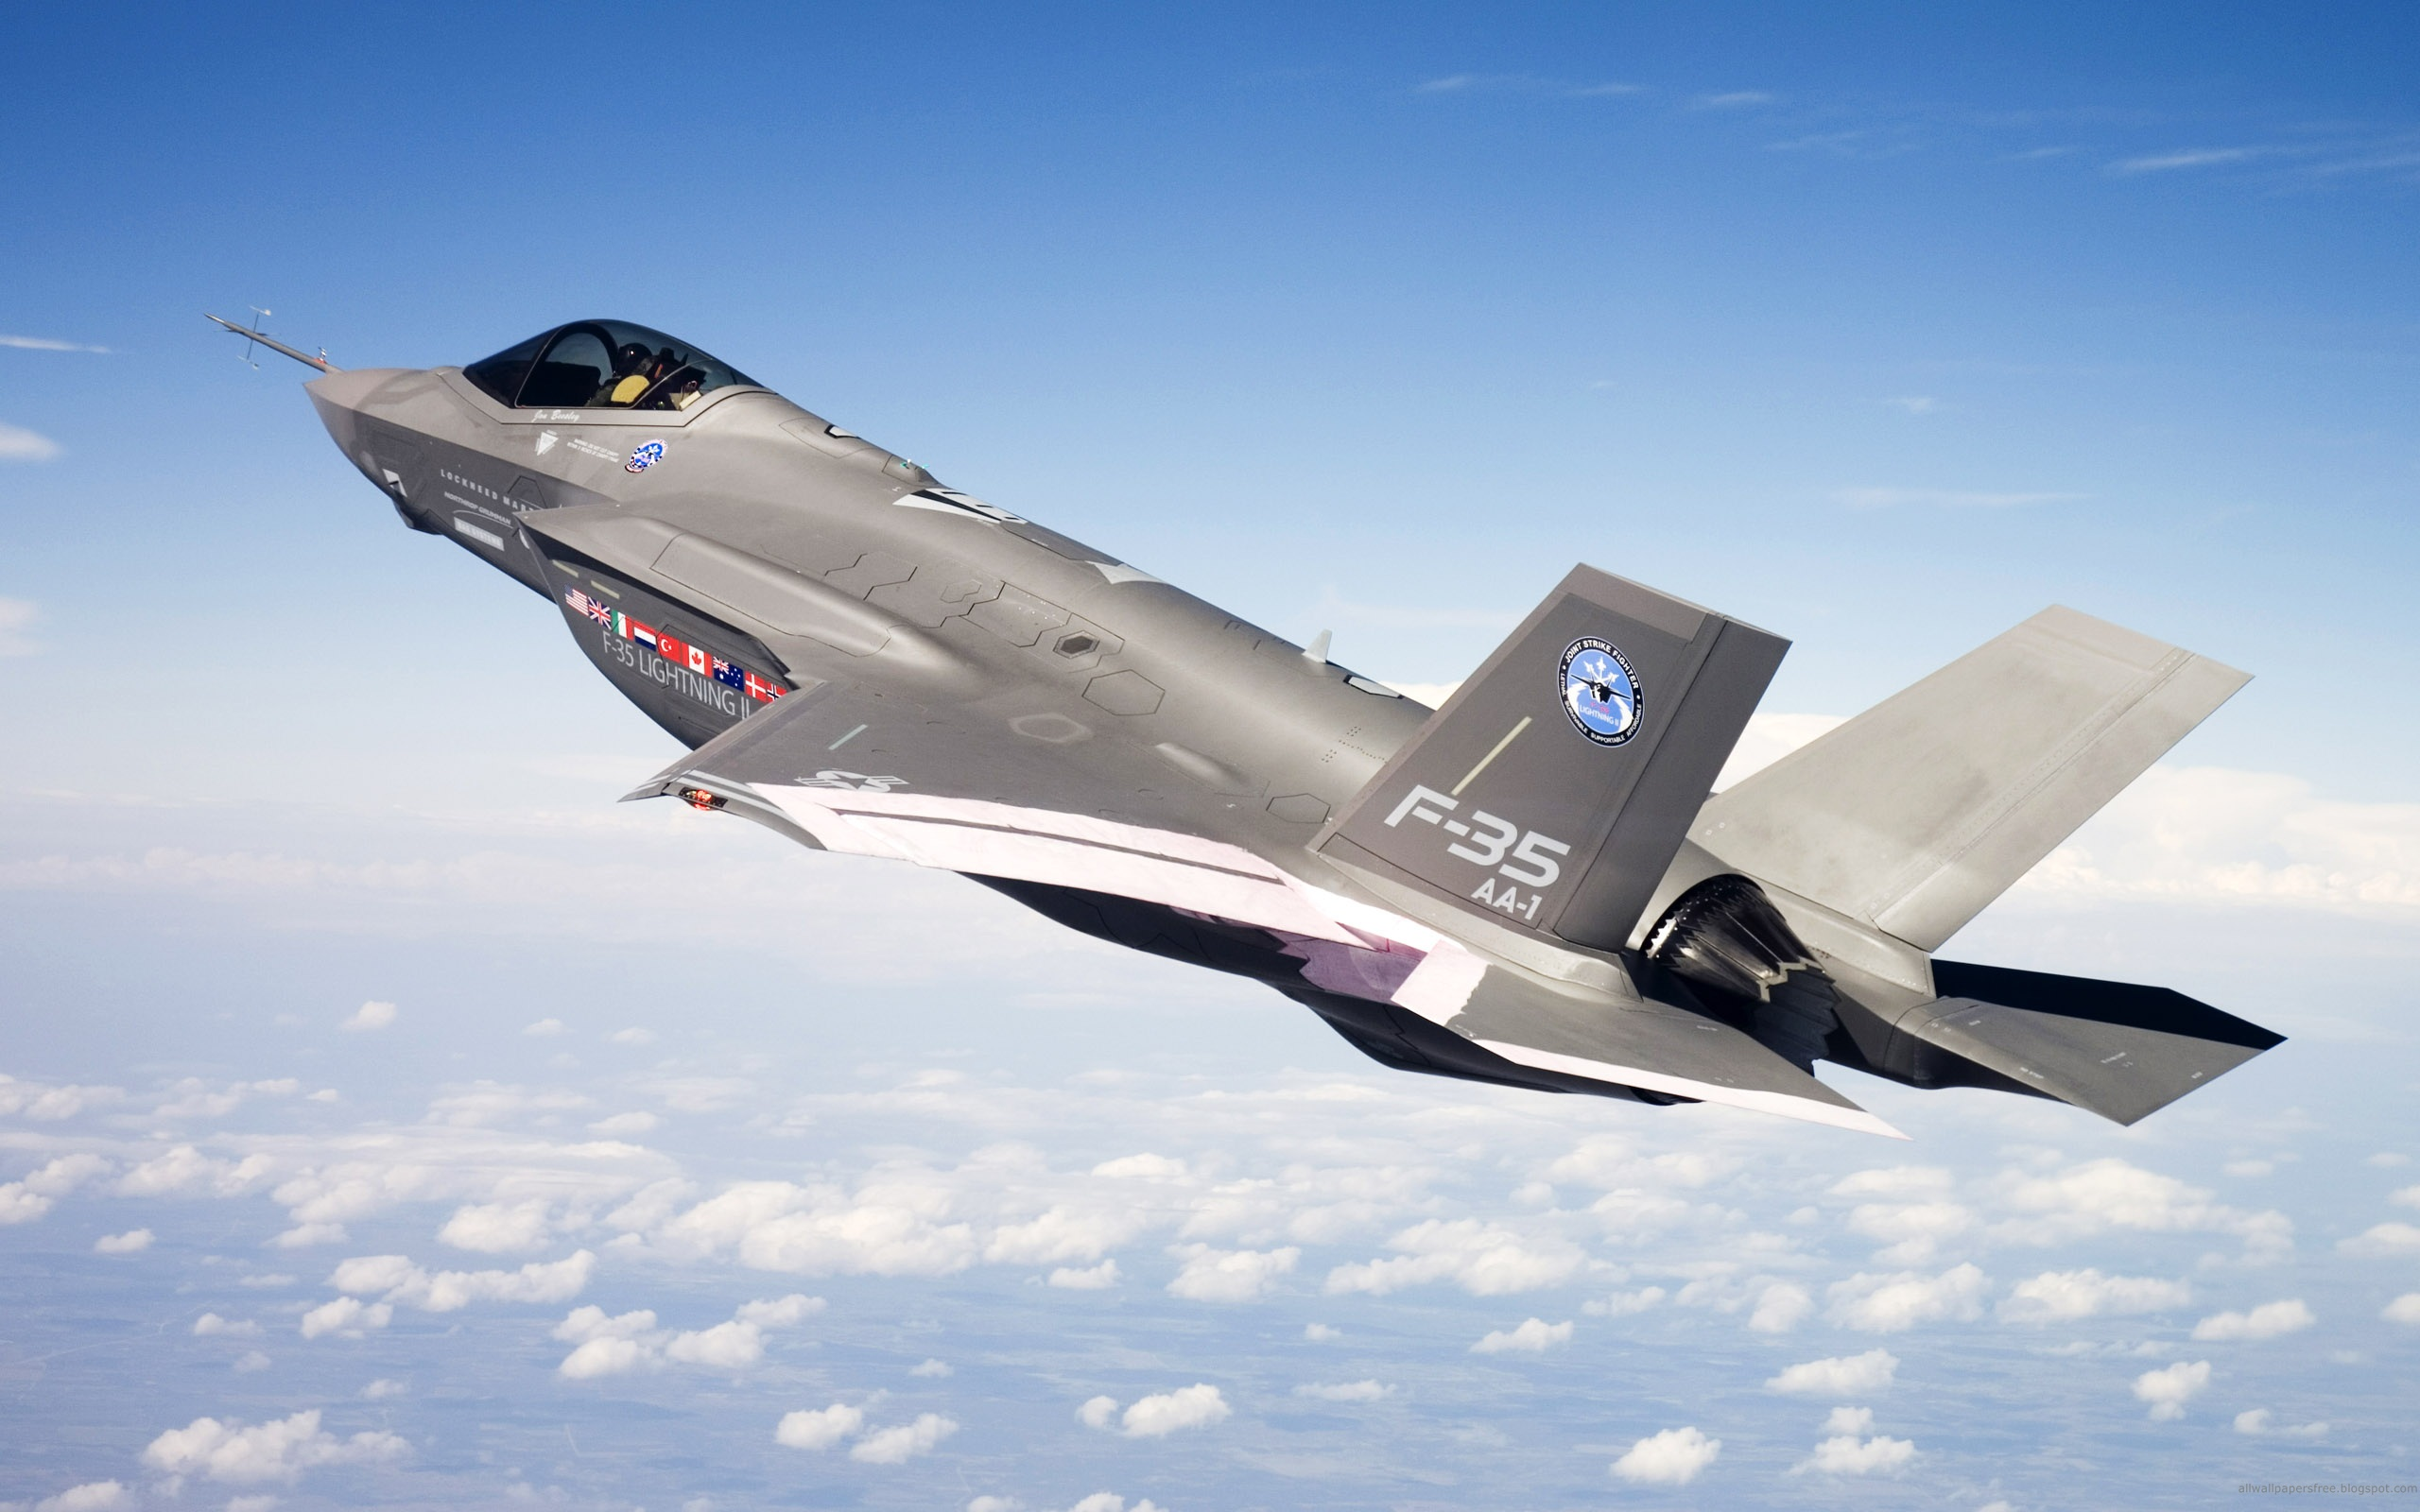 DailyTech - Pentagon to Use Lithium-Ion Batteries for F-35 Jets Despite Boeing 787 Woes